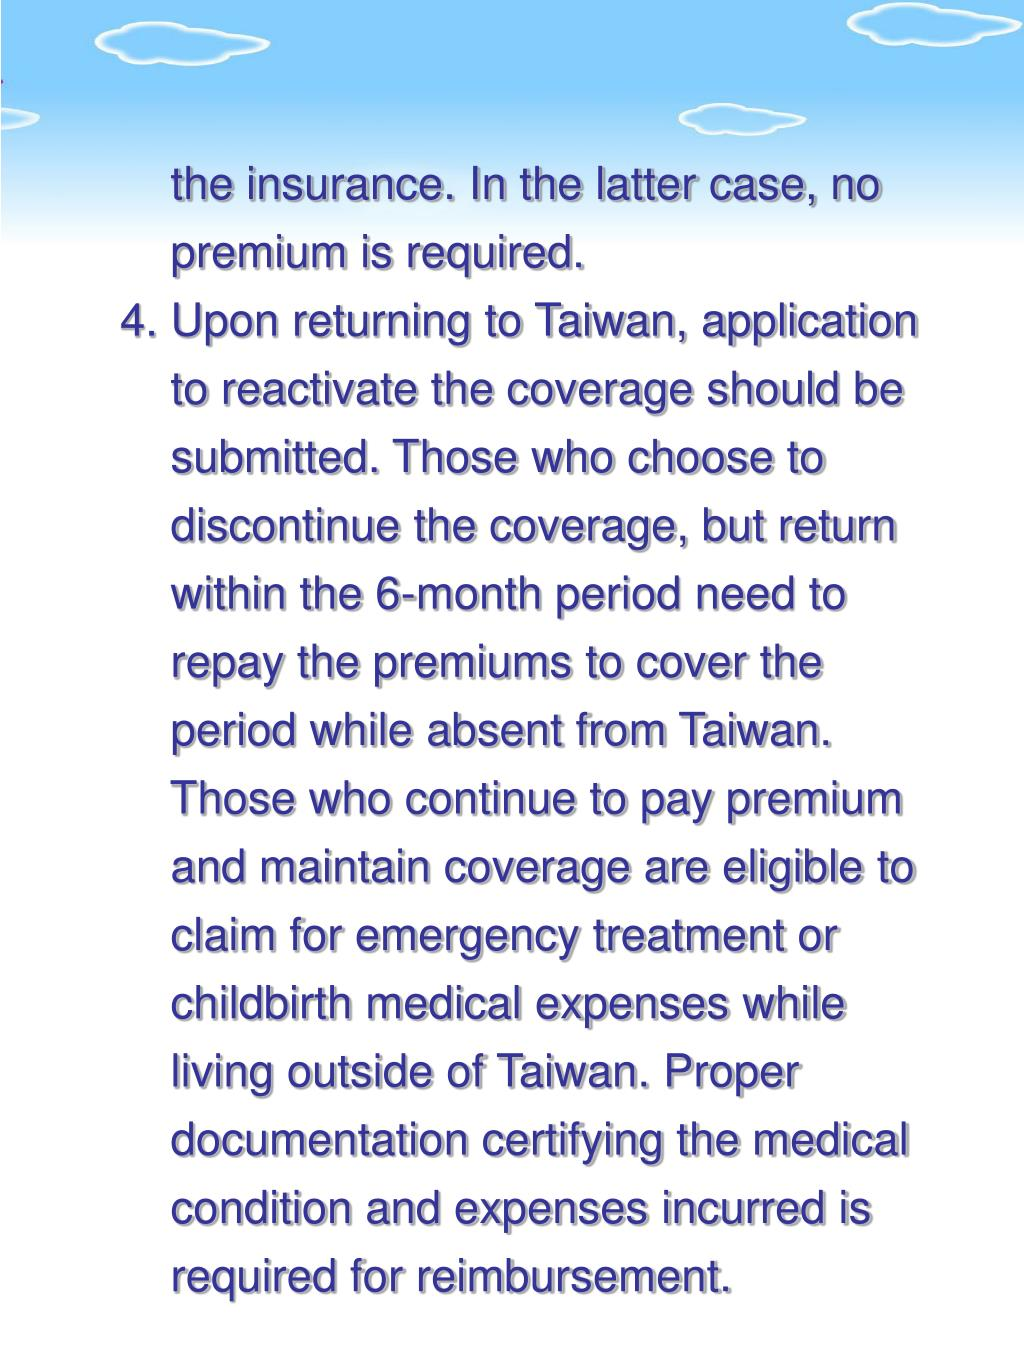 the insurance. In the latter case, no